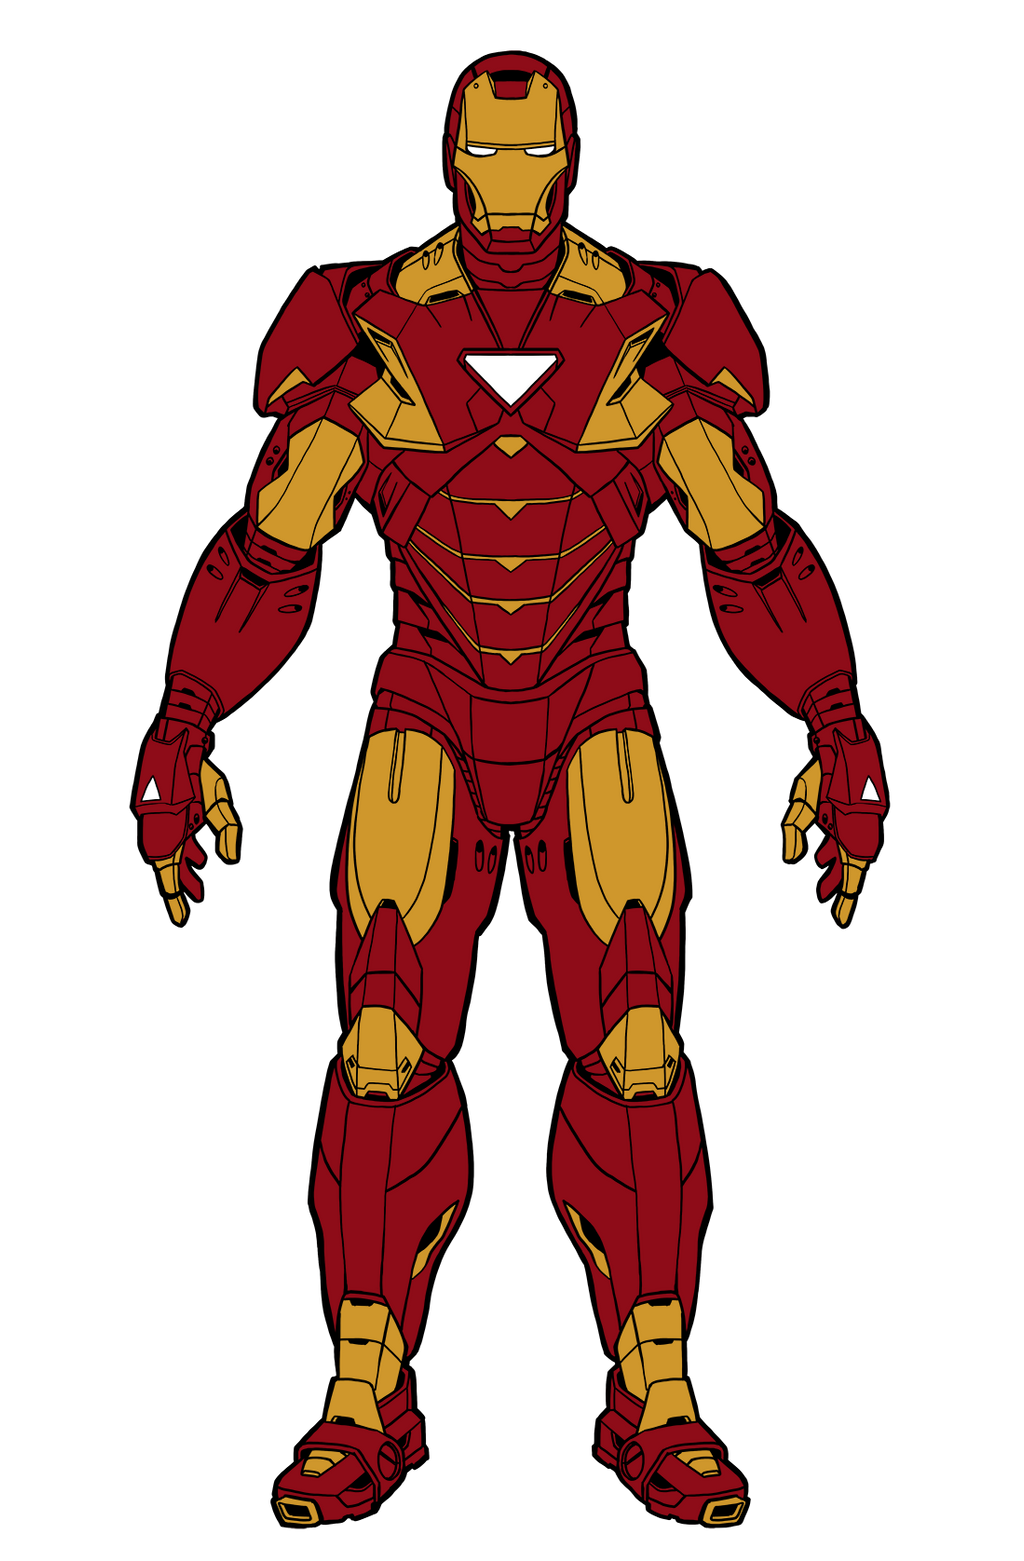 Iron Man by illustrationoverdose on DeviantArt